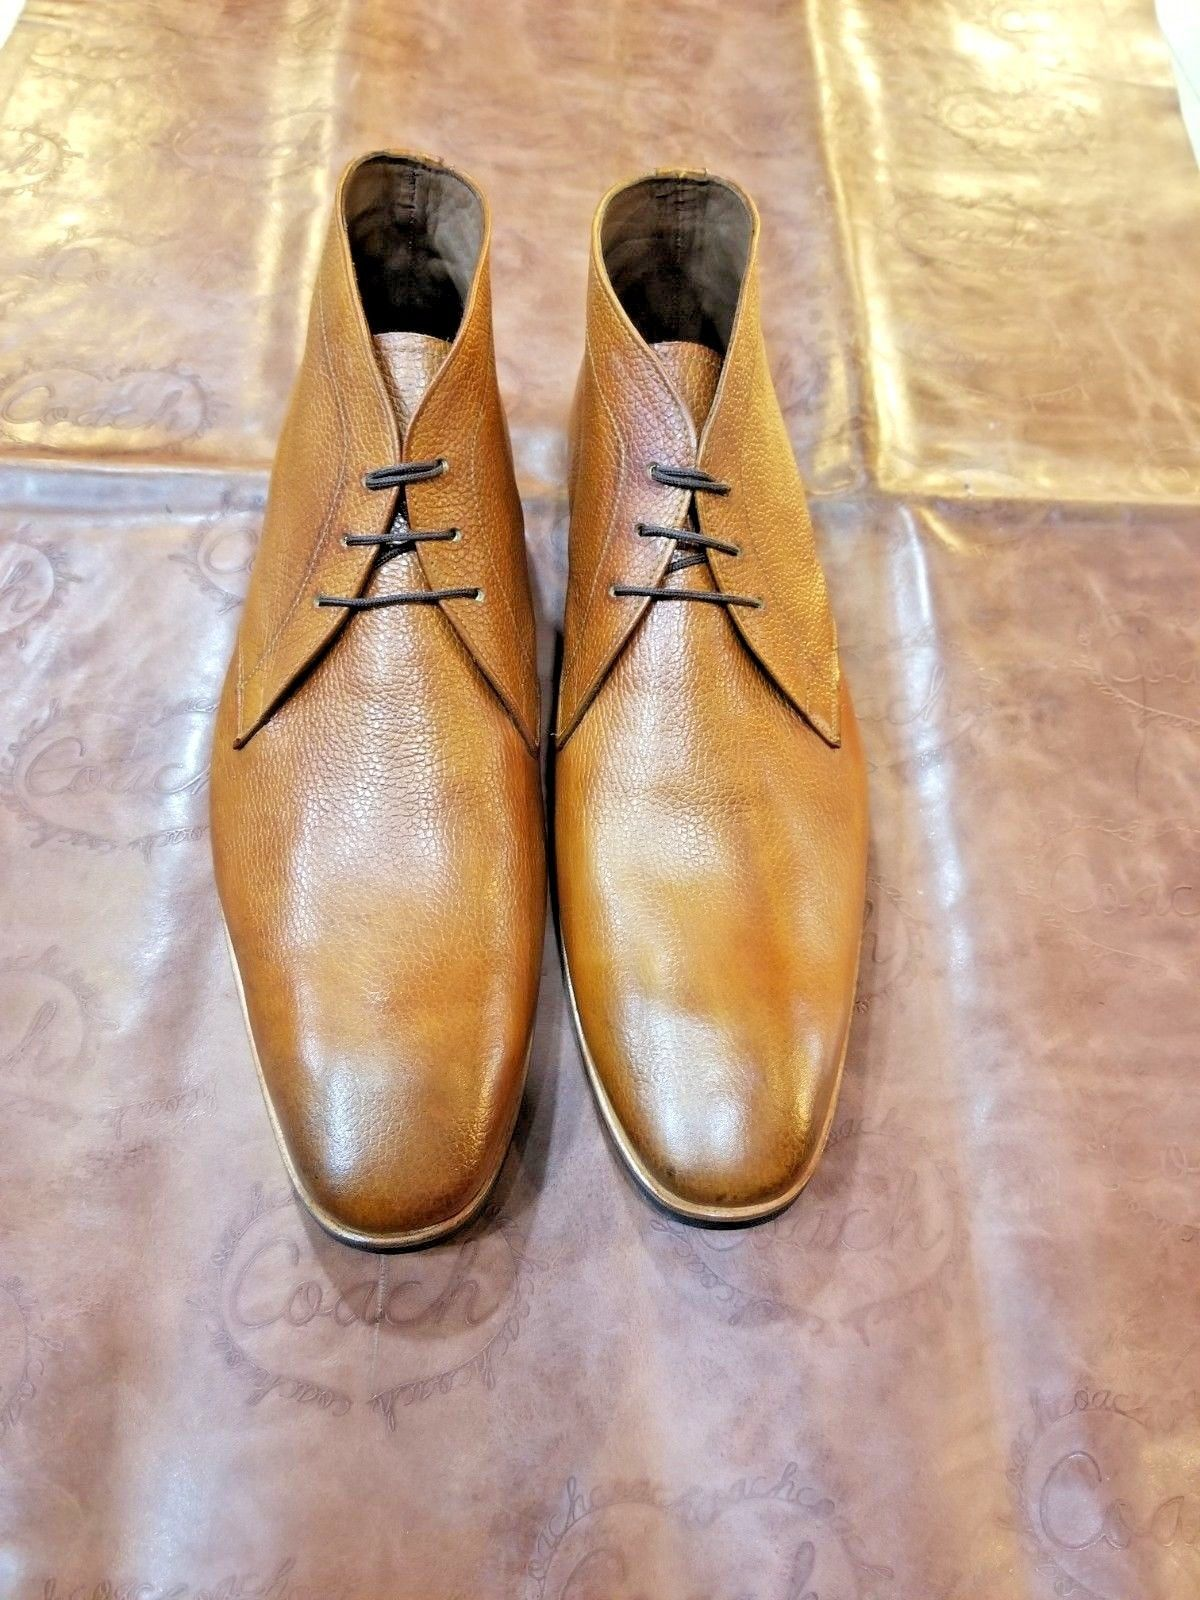 Handmade Men's Brown Leather Chukka Dress/Formal Boots